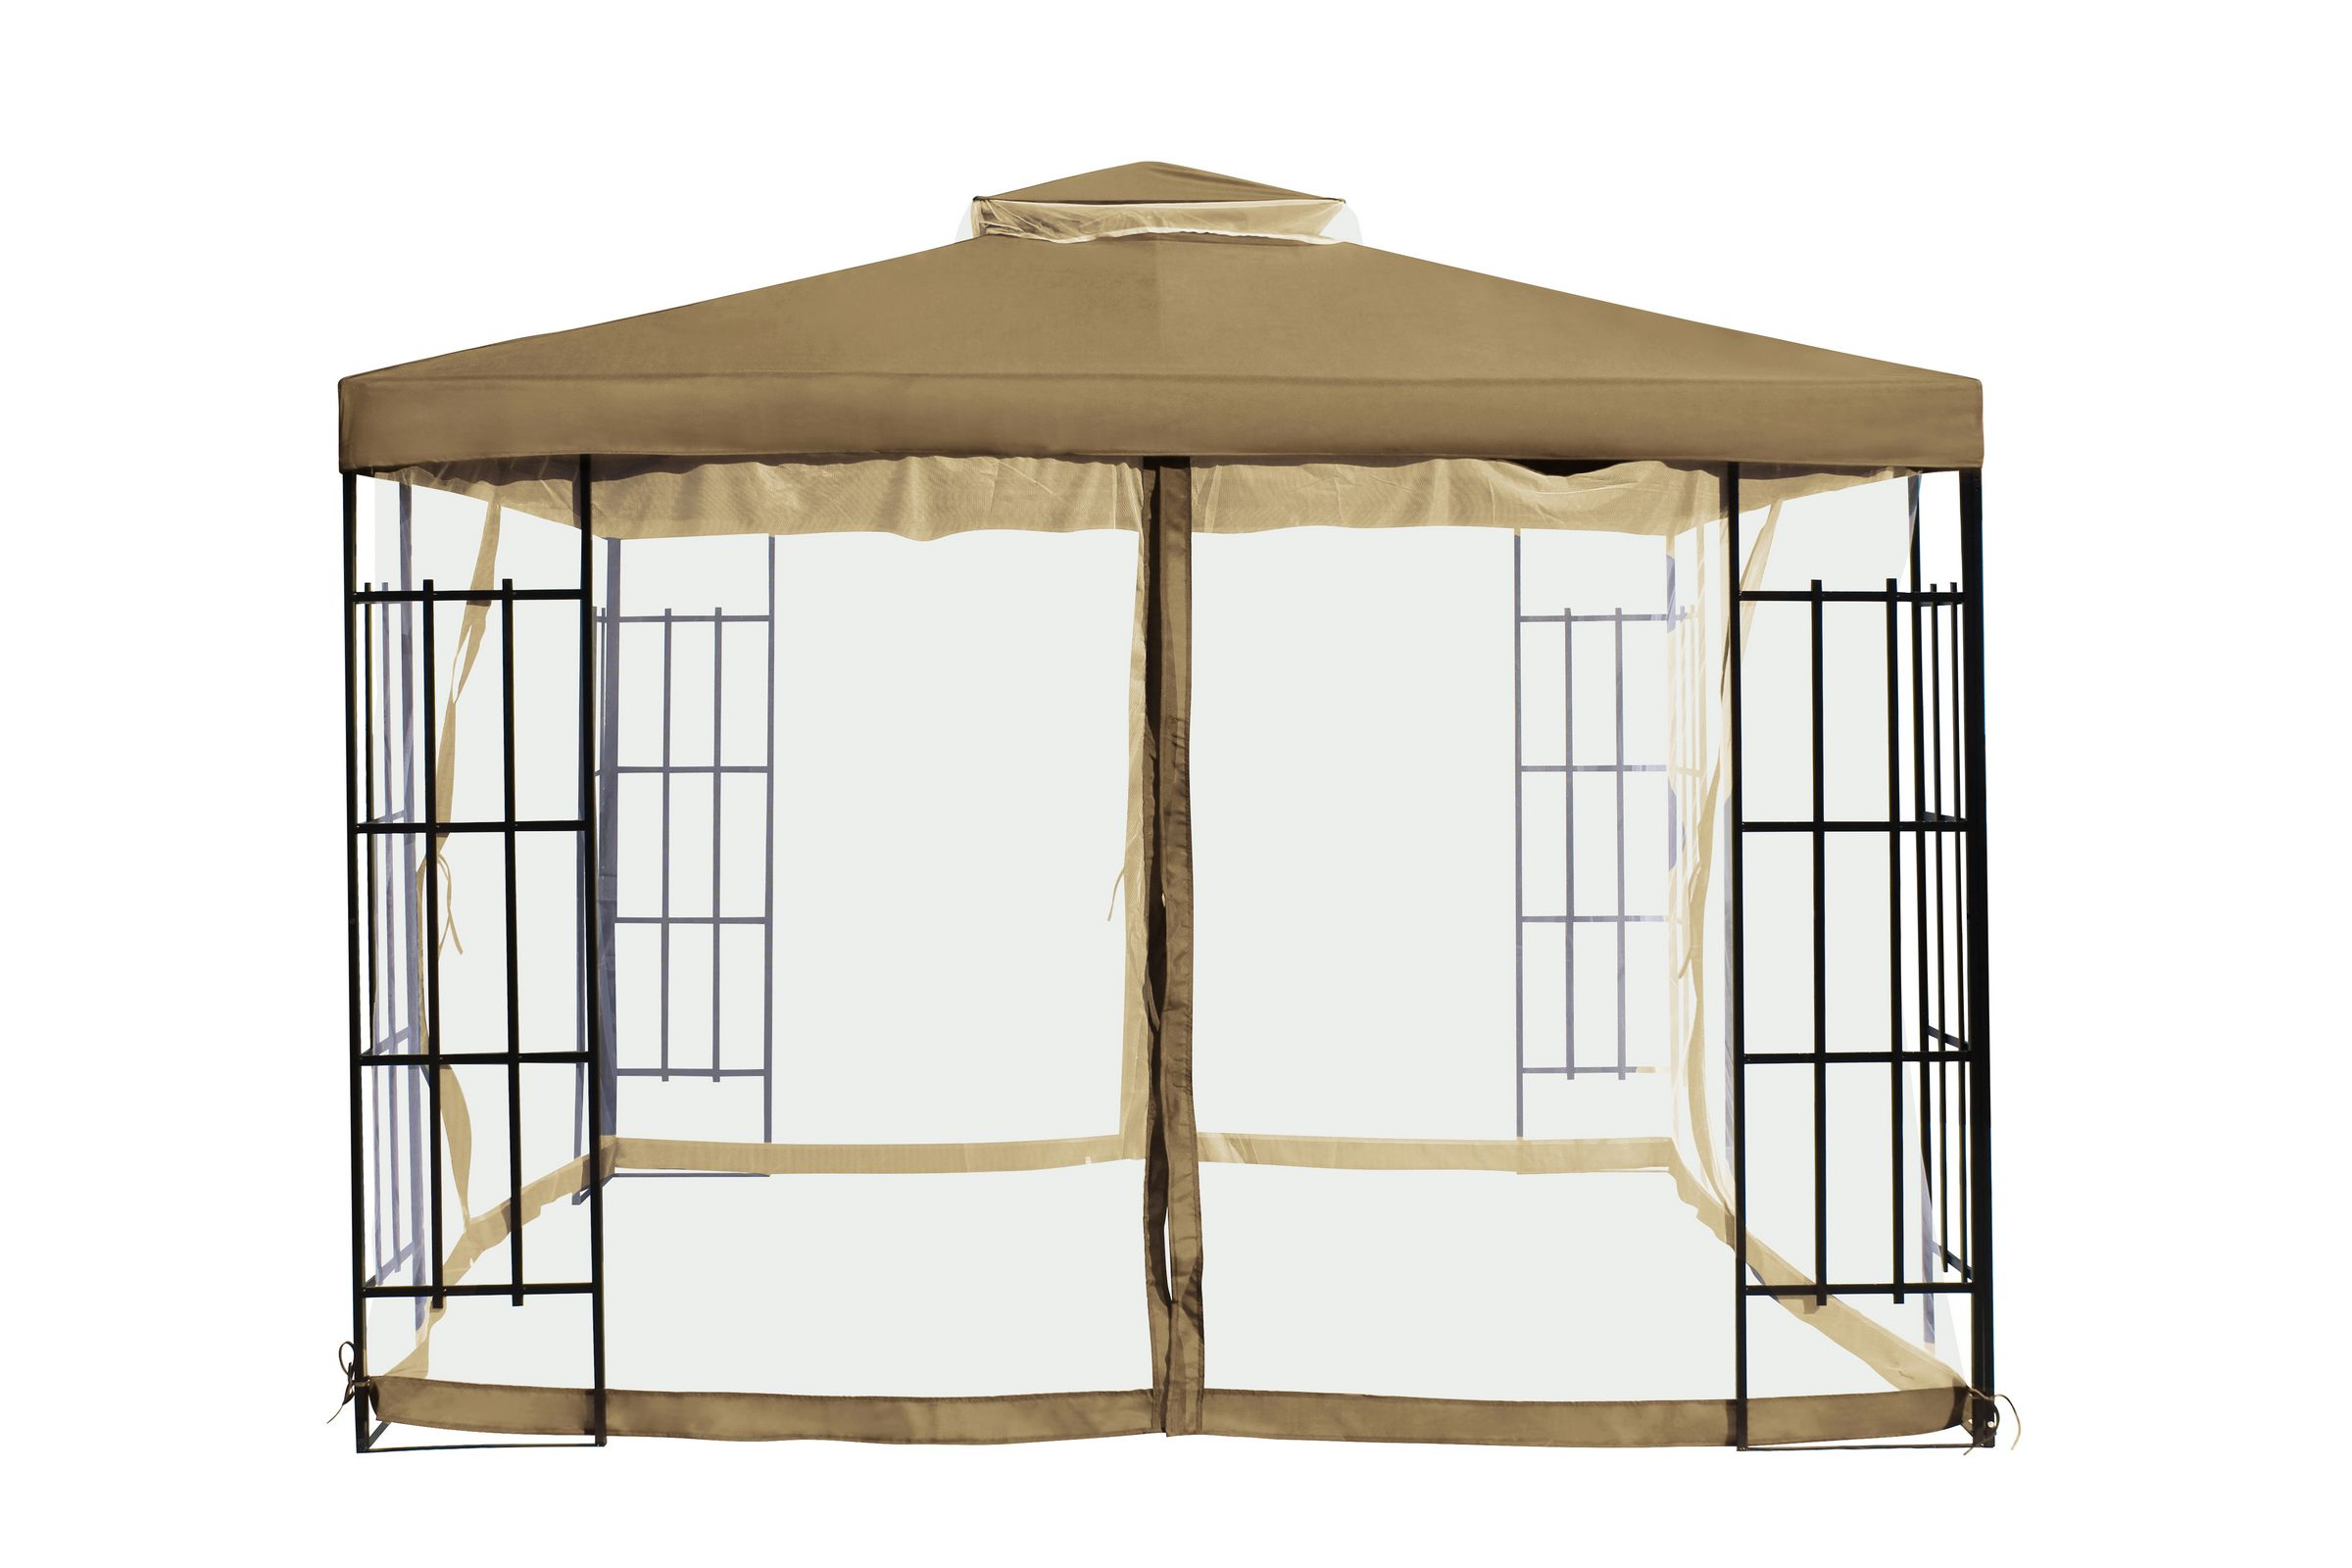 Carpa glorieta foxhunter 3x3 metros jard n patio refugio - Carpas para patios ...